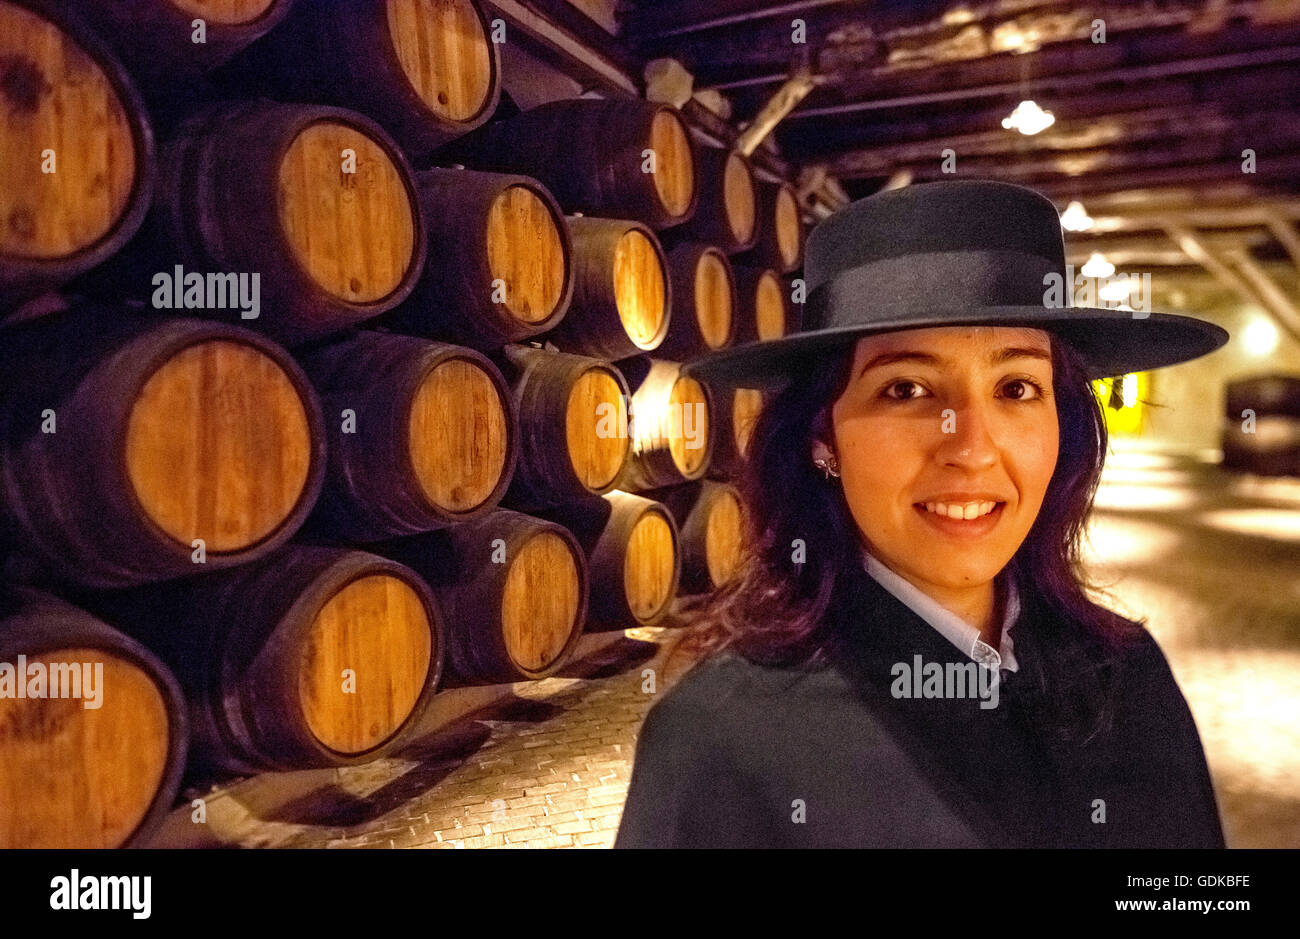 classic tour guide with students robe Zorro hat and cape, Port wine barrels, wine cellar of the winery Sandeman - Stock Image